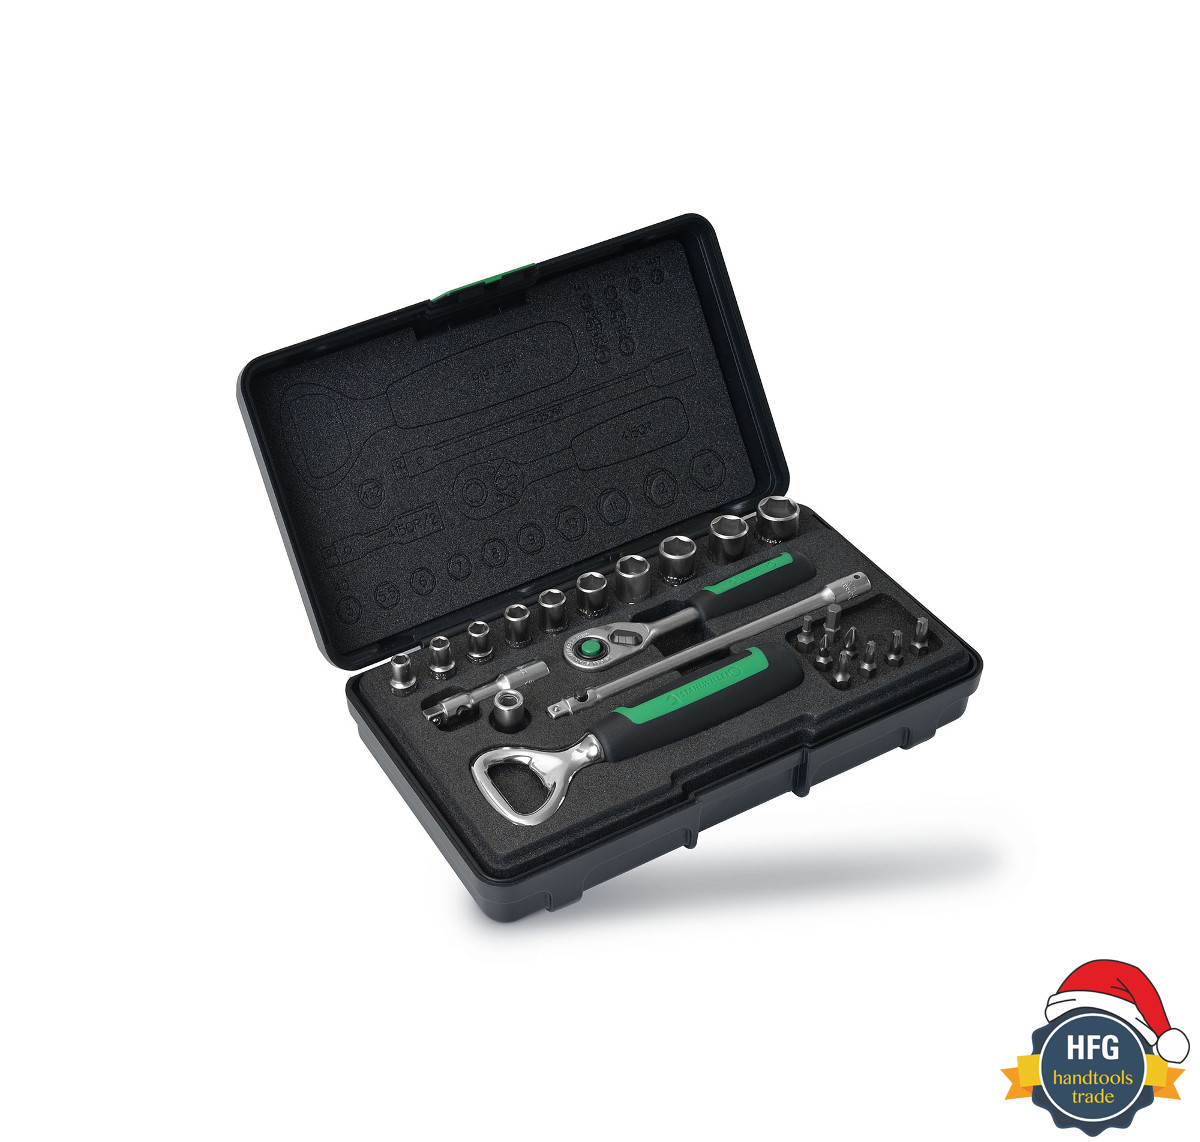 Stahlwille 90241712 Socket set, 24pcs.